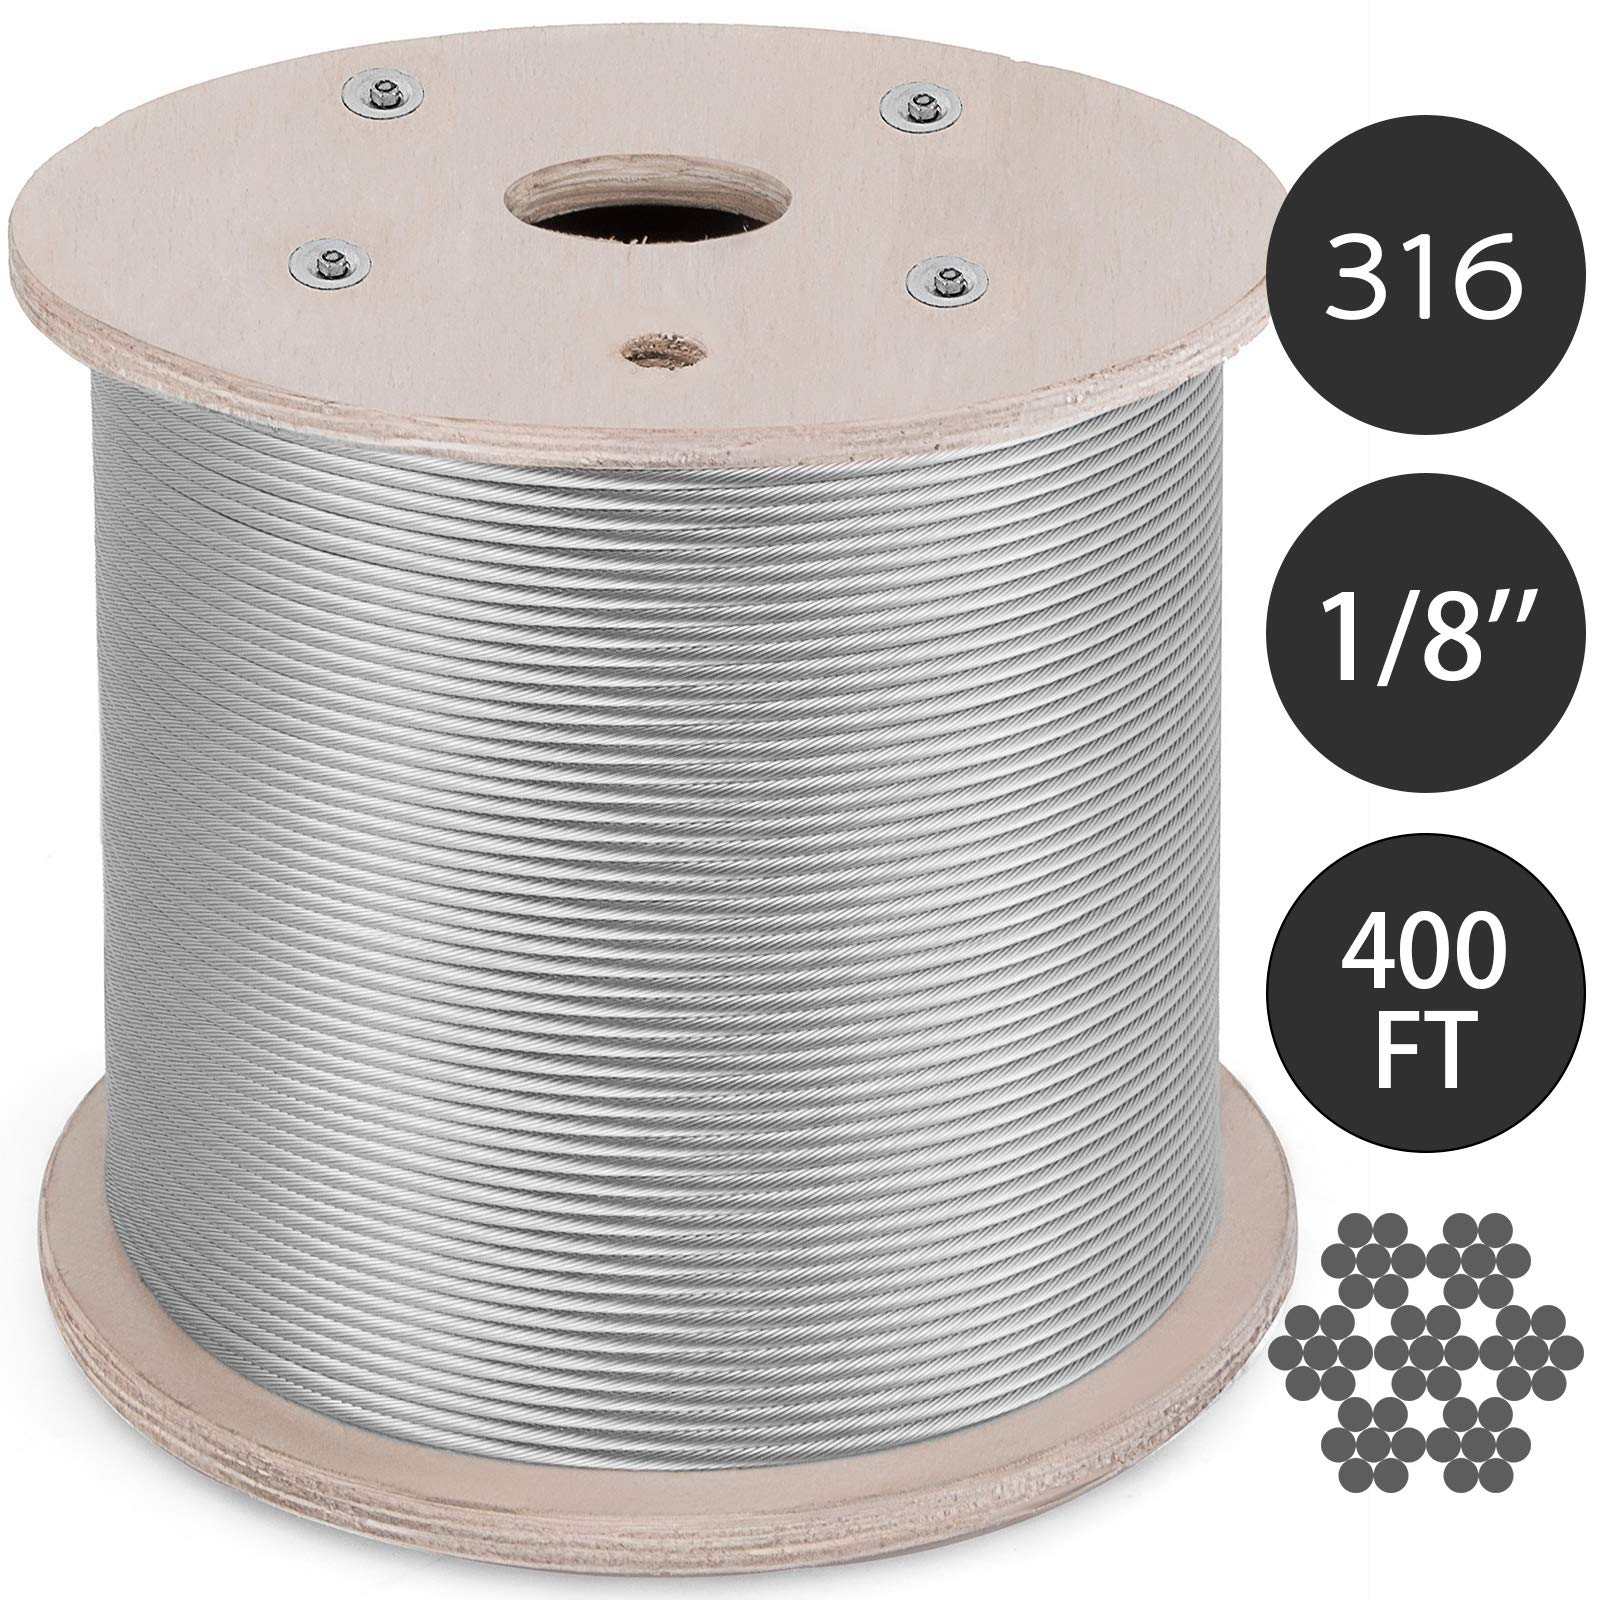 BestEquip 0.125Inch T316 Stainless Steel Cable 7x7 Strand Winch Rope Aircraft Steel Cable Stainless Steel Wire Rope Cable 400FT(0.125In 400Ft T316)